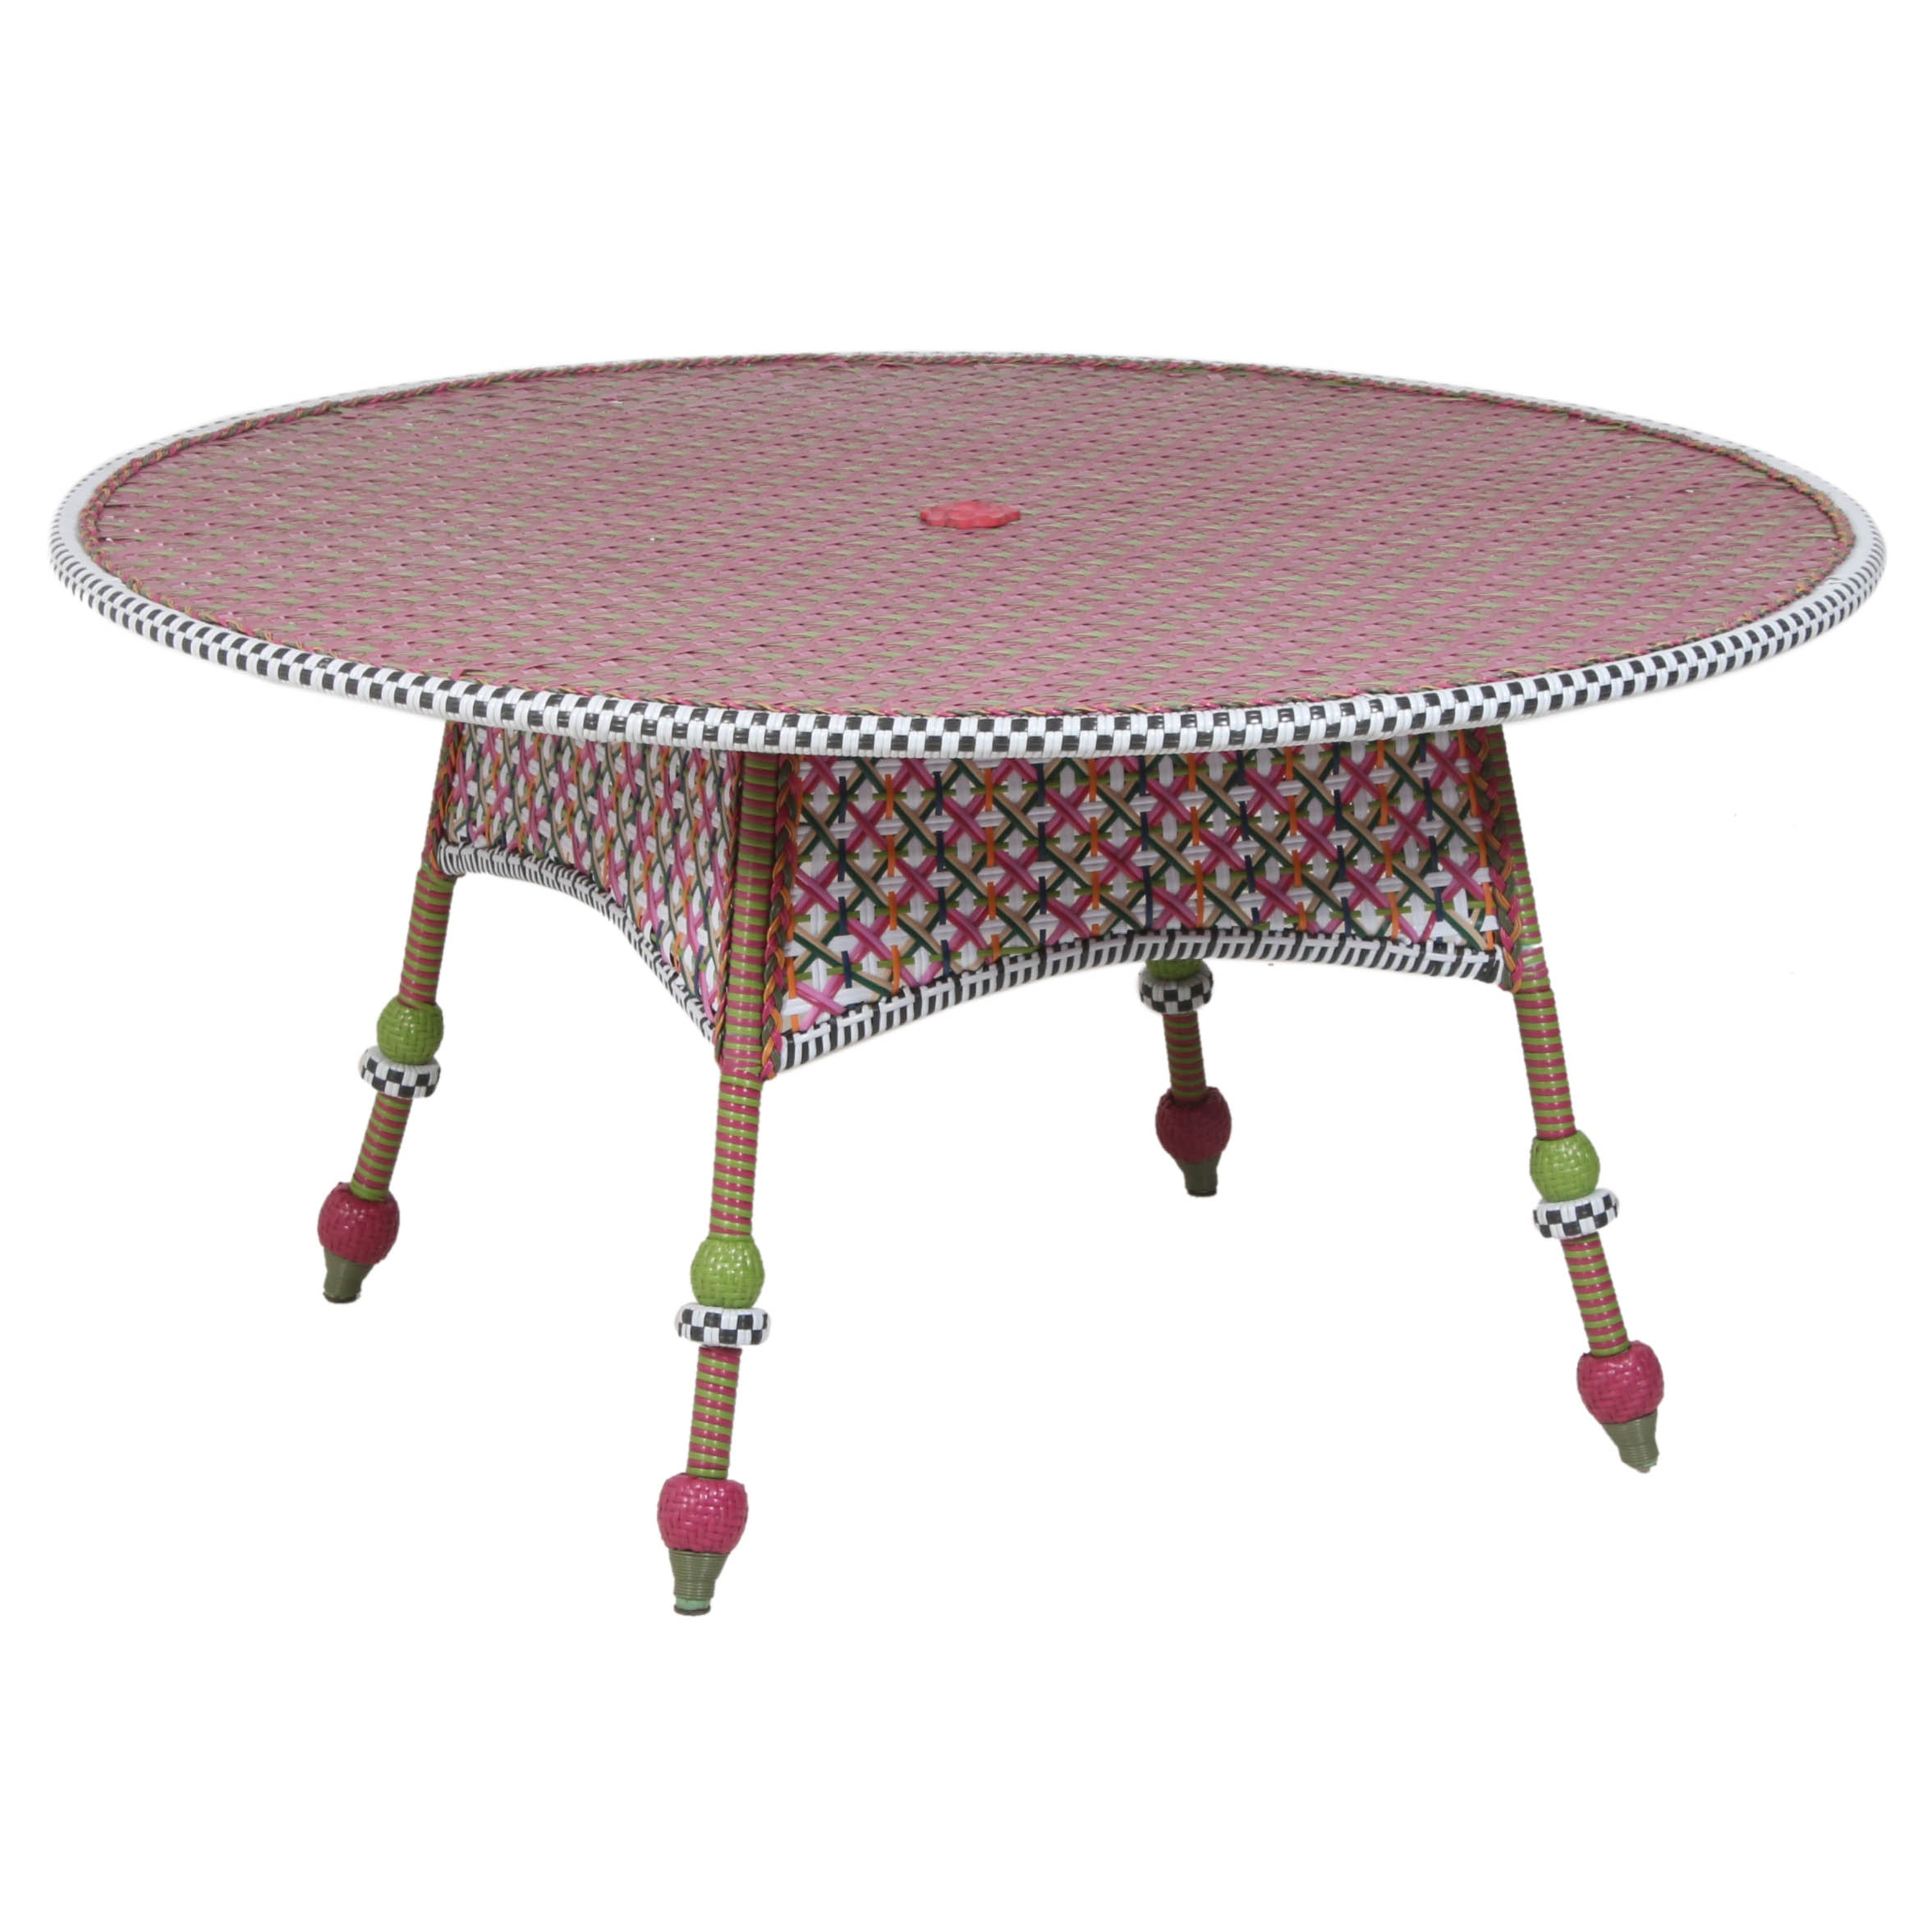 "MacKenzie-Childs ""Greenhouse Collection"" Outdoor Dining Table"